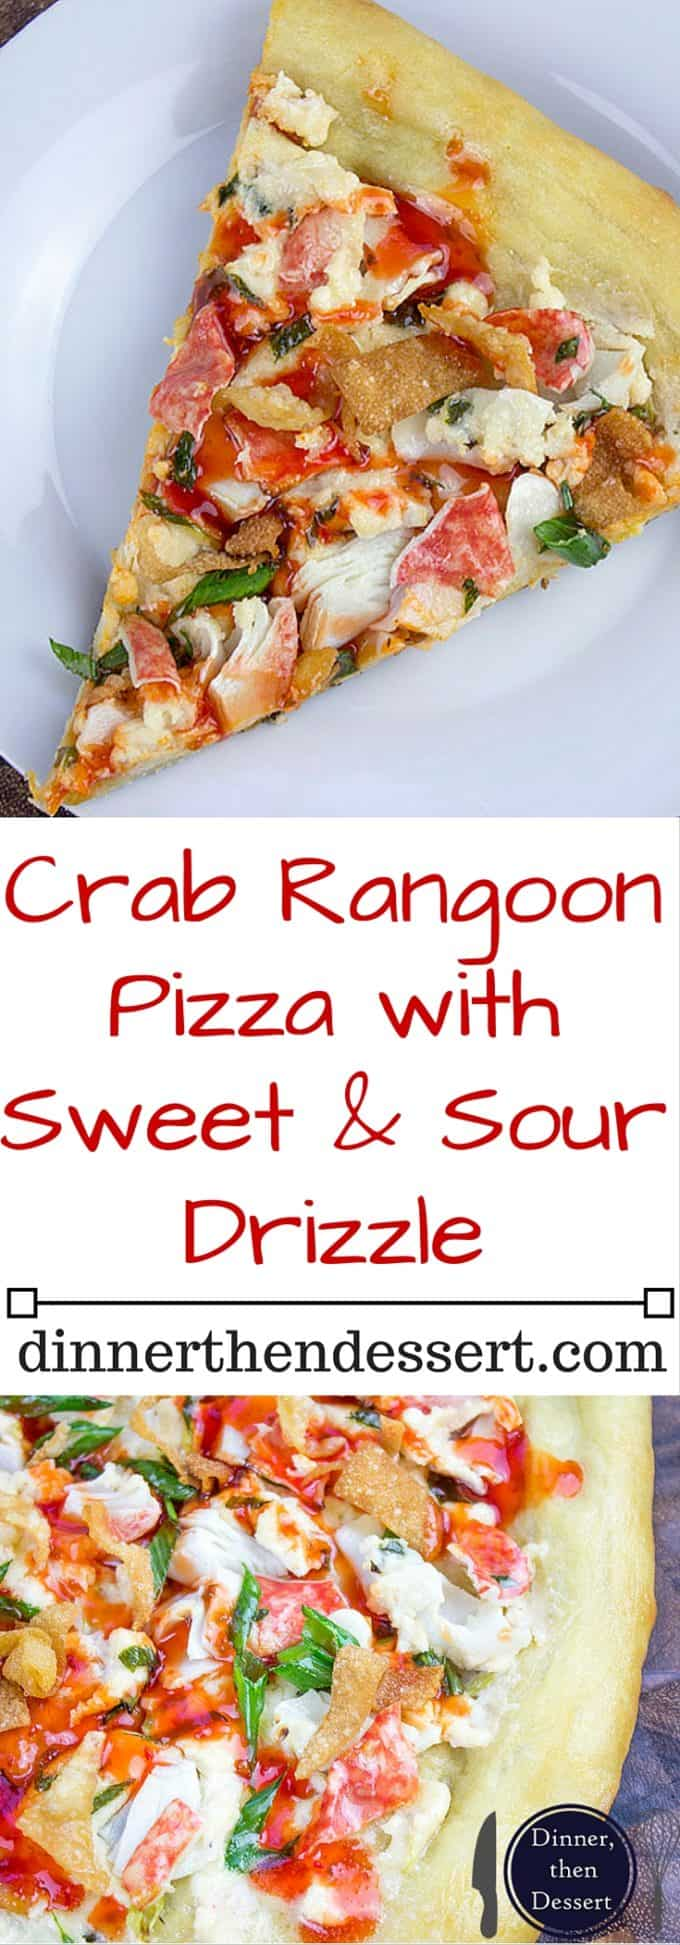 "This Crab Wonton Pizza with Sweet & Sour Drizzle is the answer to ""Pizza or Chinese?"" and in the best possible way because you can make it at home! Crunchy, creamy, sweet and sour you'll find yourselves fighting over the last slice!"